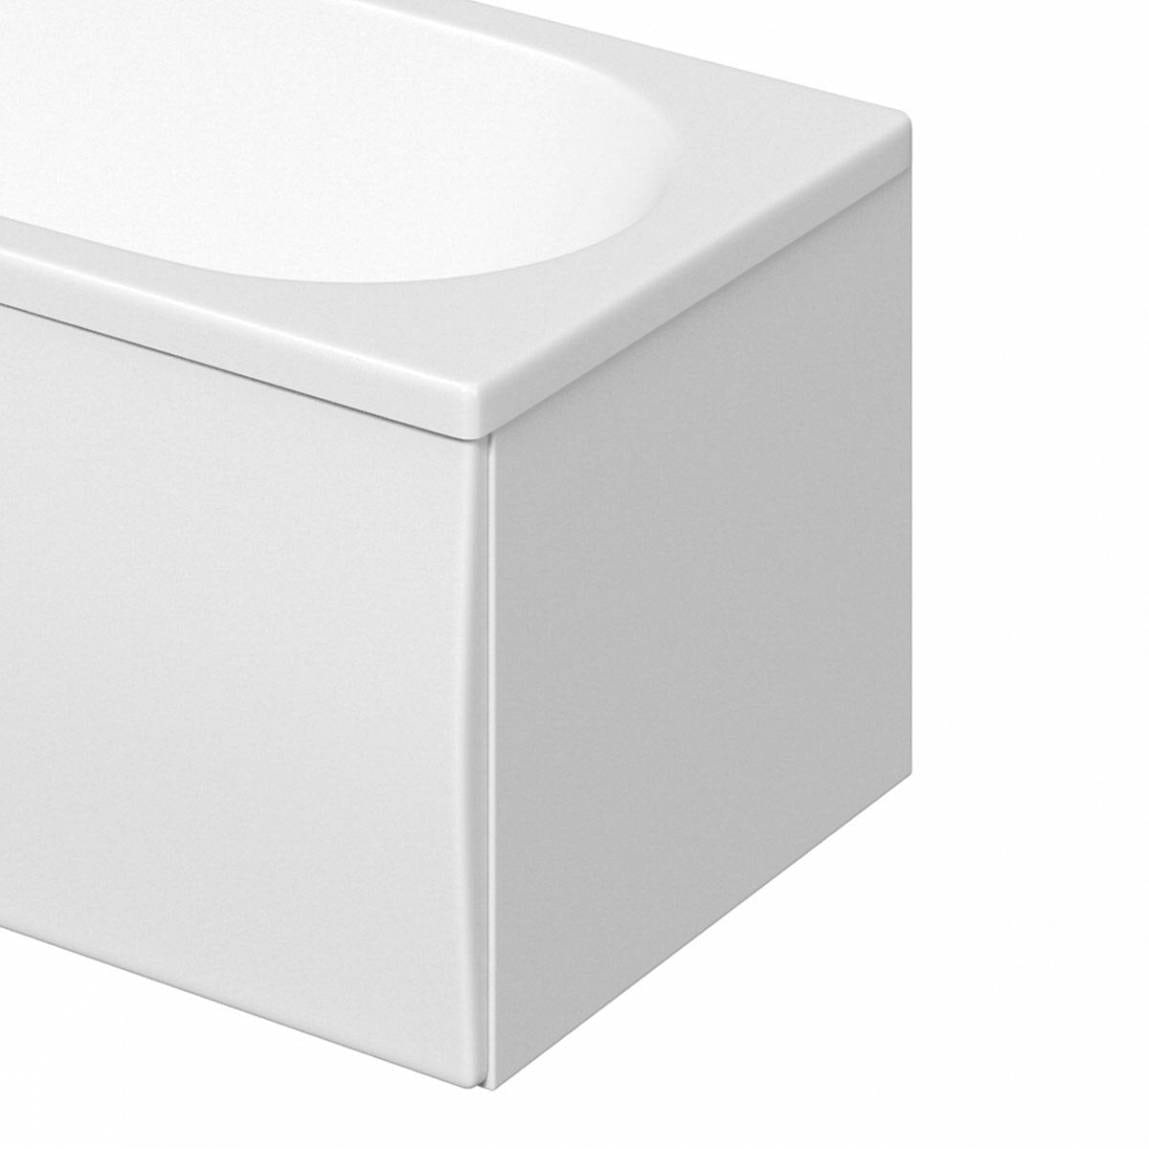 Evesham 700 Bath End Panel